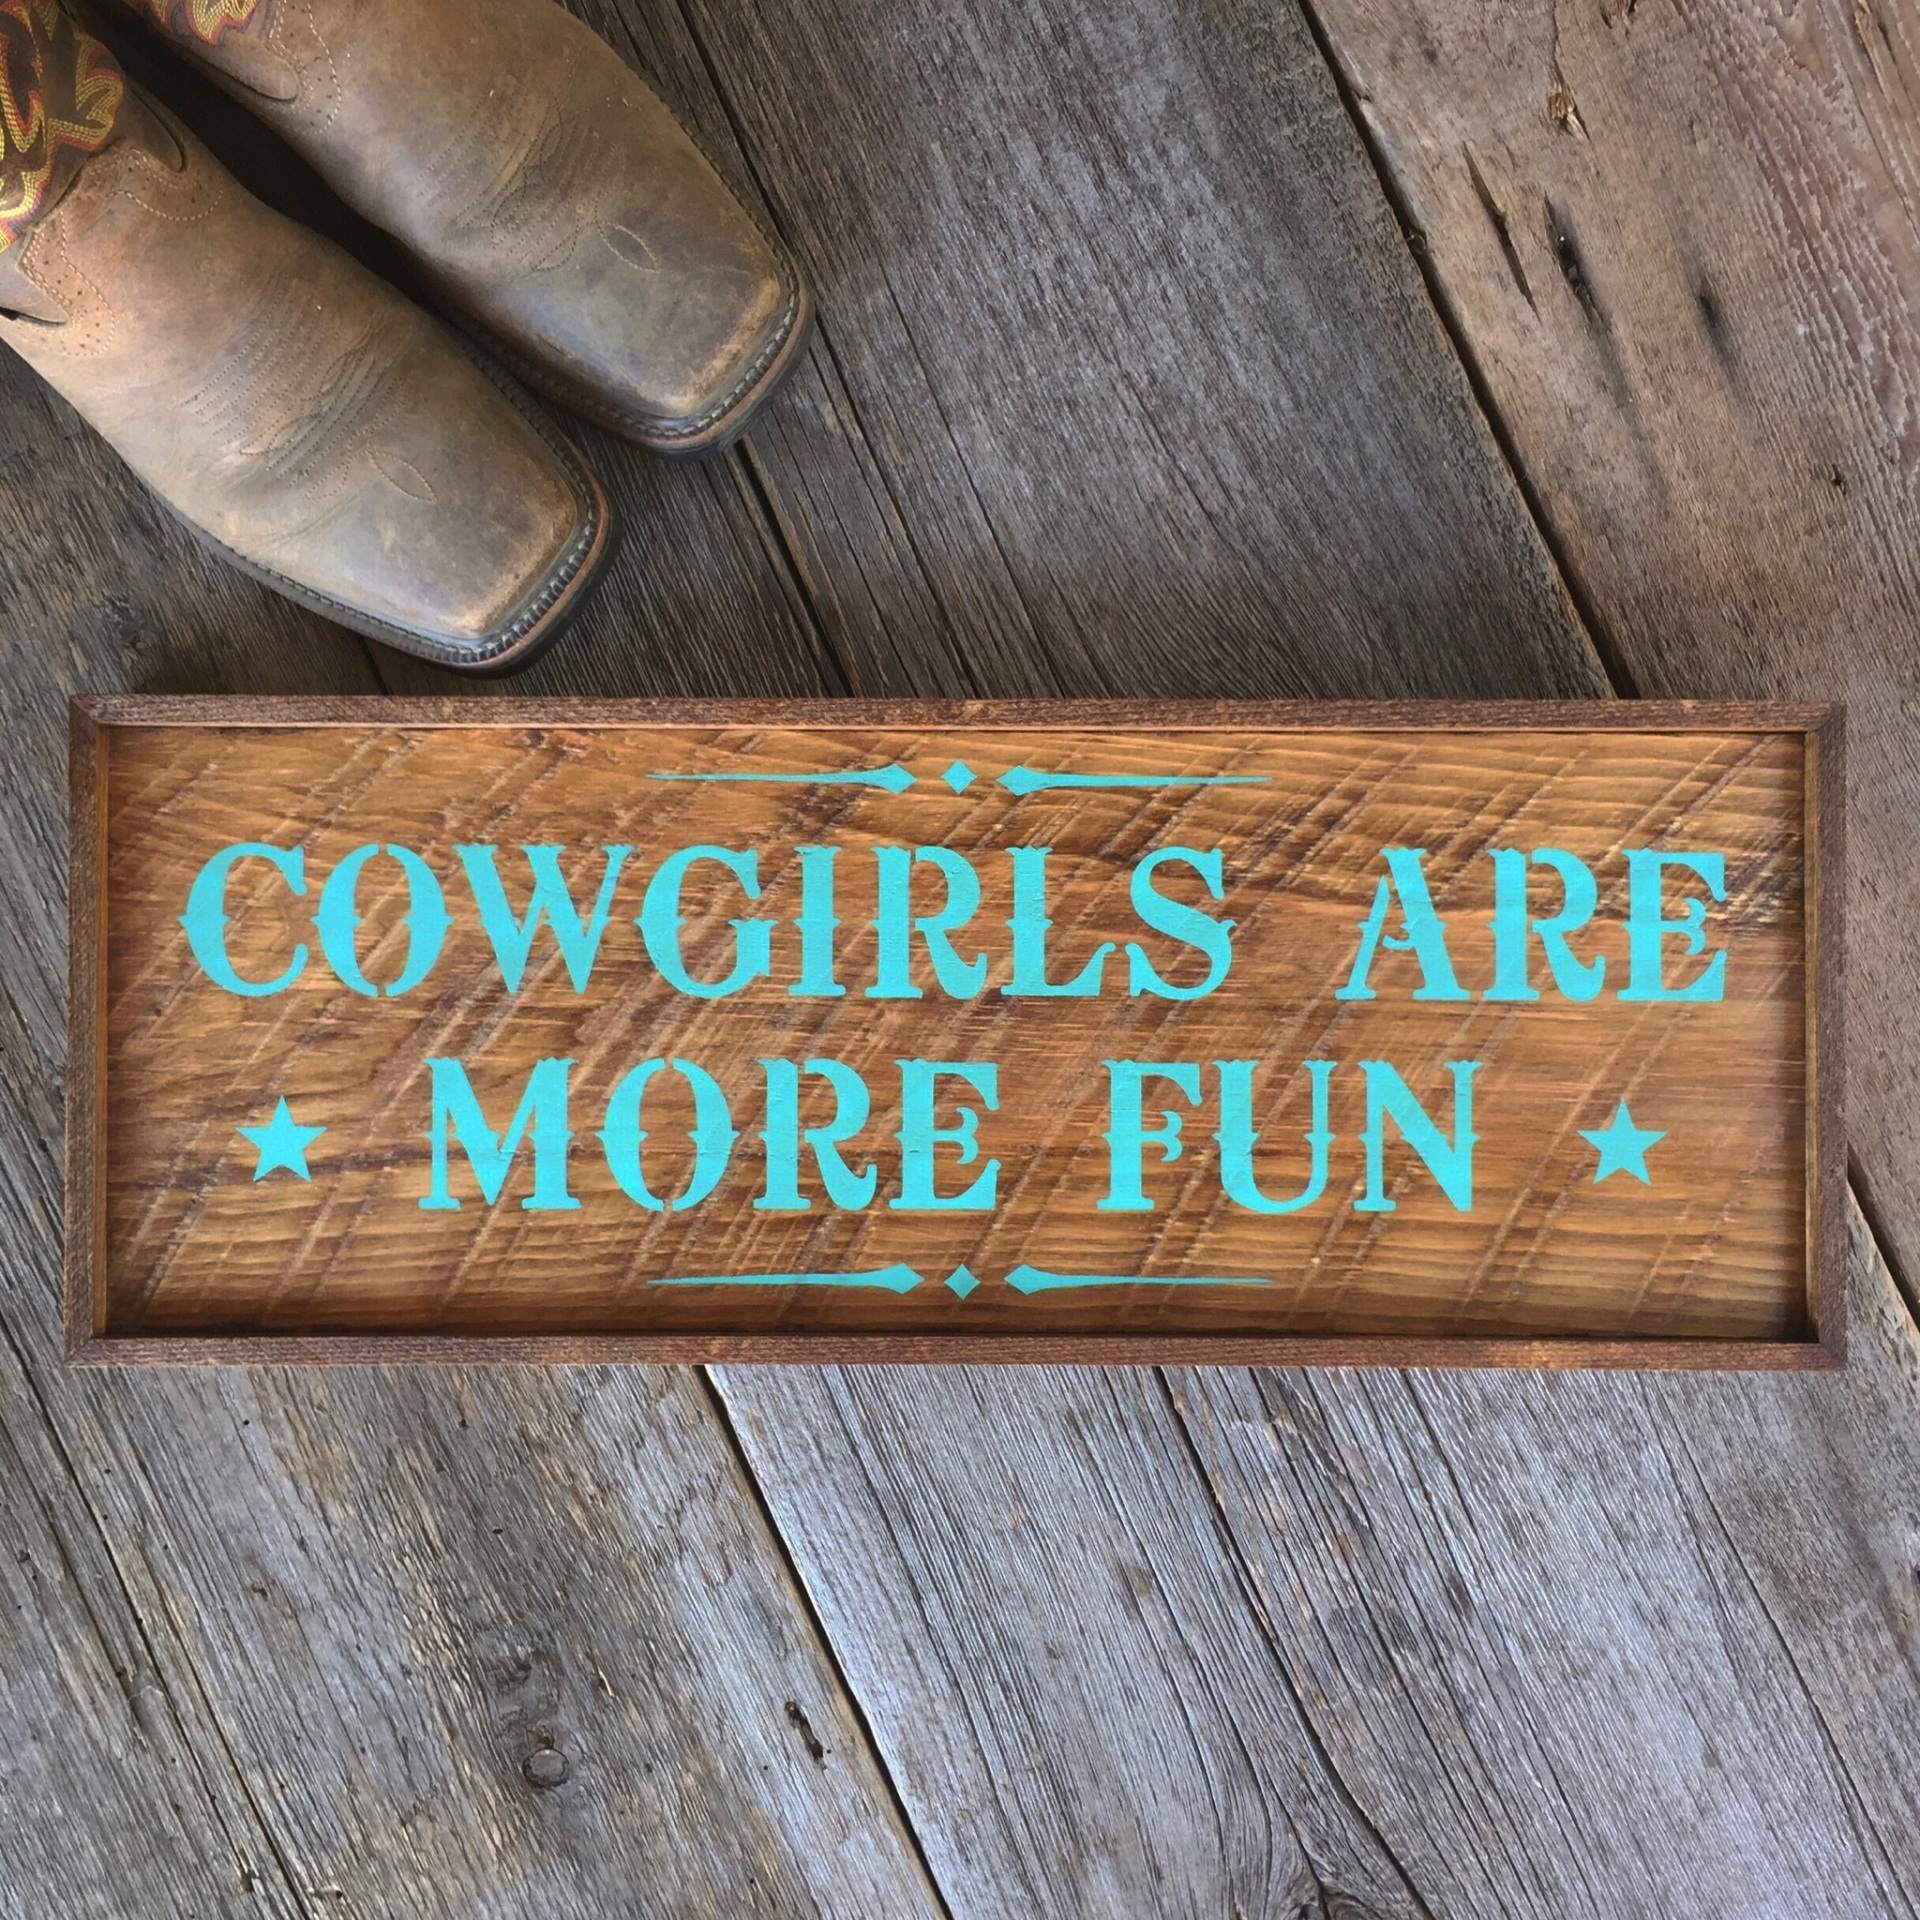 Cowgirl Sayings, Cowgirl Signs, Cowgirl Lifestyle, Western Style Wood Signs, Handmade Signs, Rustic Wood Signs, Cowgirl Decor Ideas, Gift ideas for Her, Hand Painted Wood Signs, Western Style Font, Turquoise, Wood Wall Decor